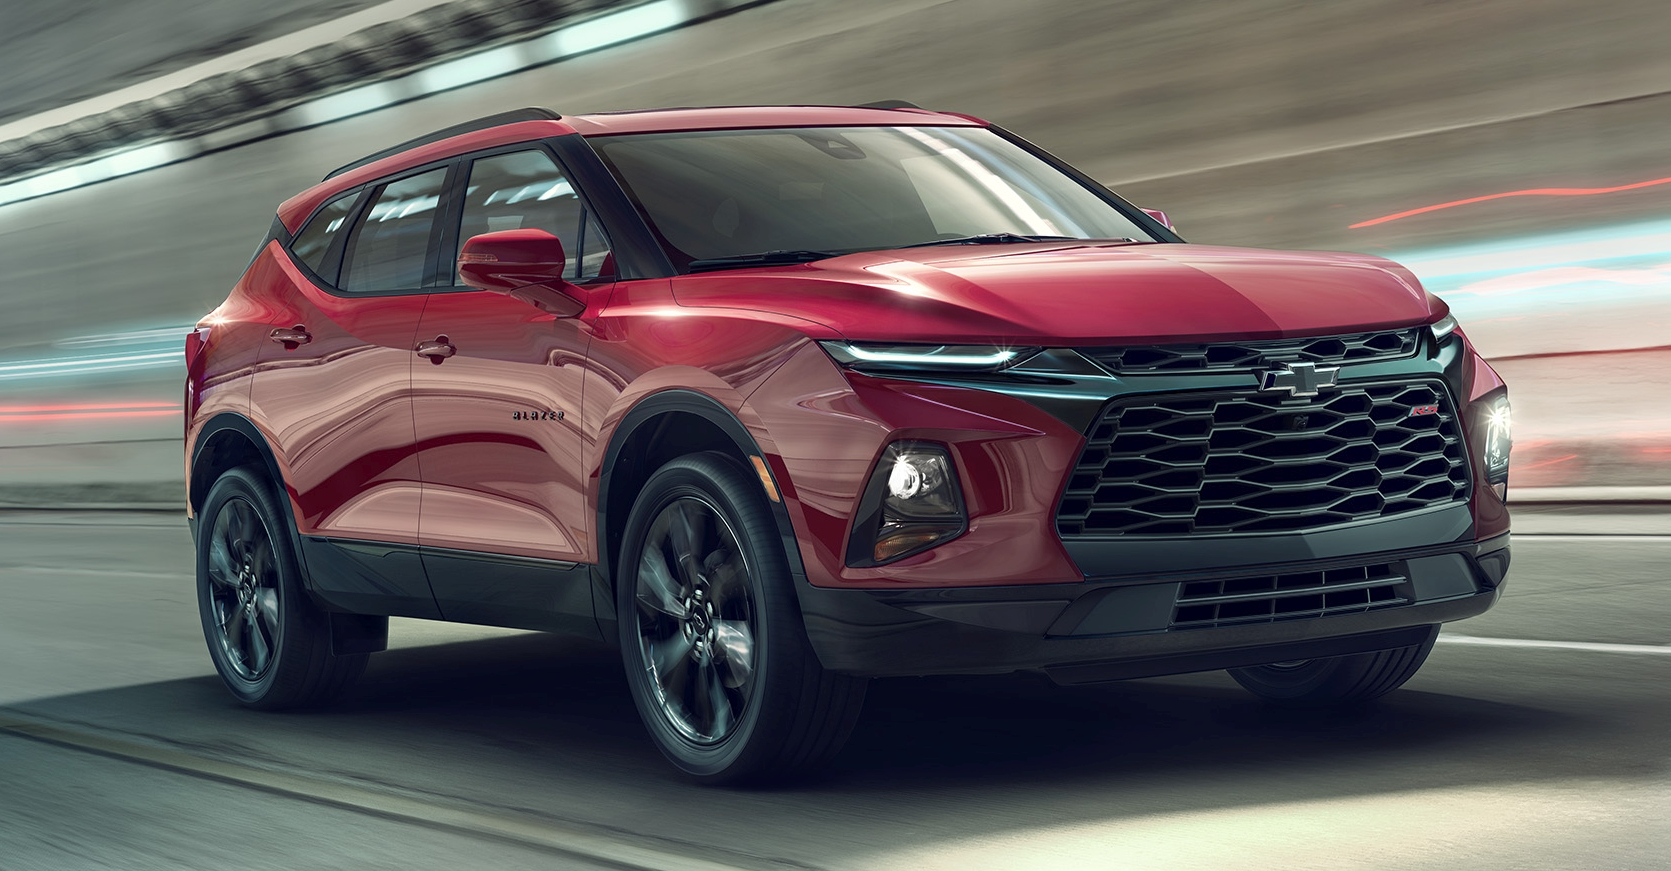 2019 Chevrolet Blazer Suv Resurrects An Old Name Paultan Org